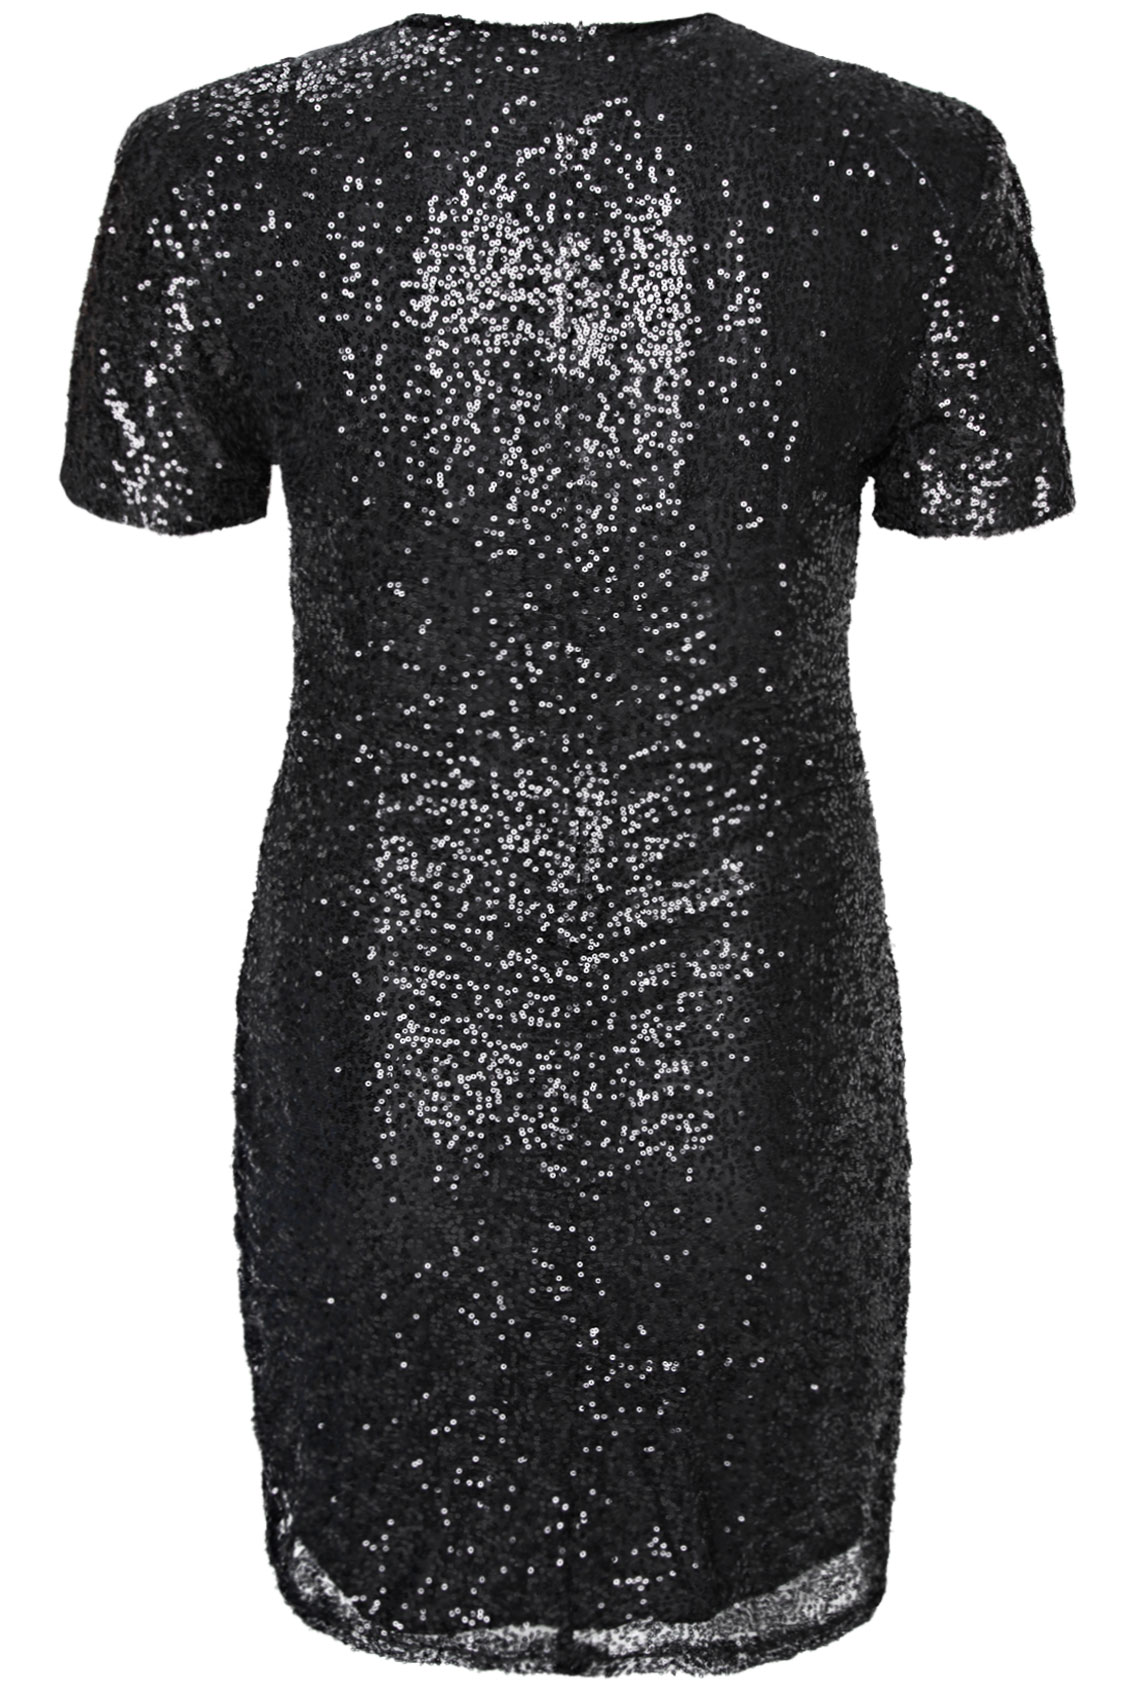 Black sparkle dresses with short sleeves size 14-16